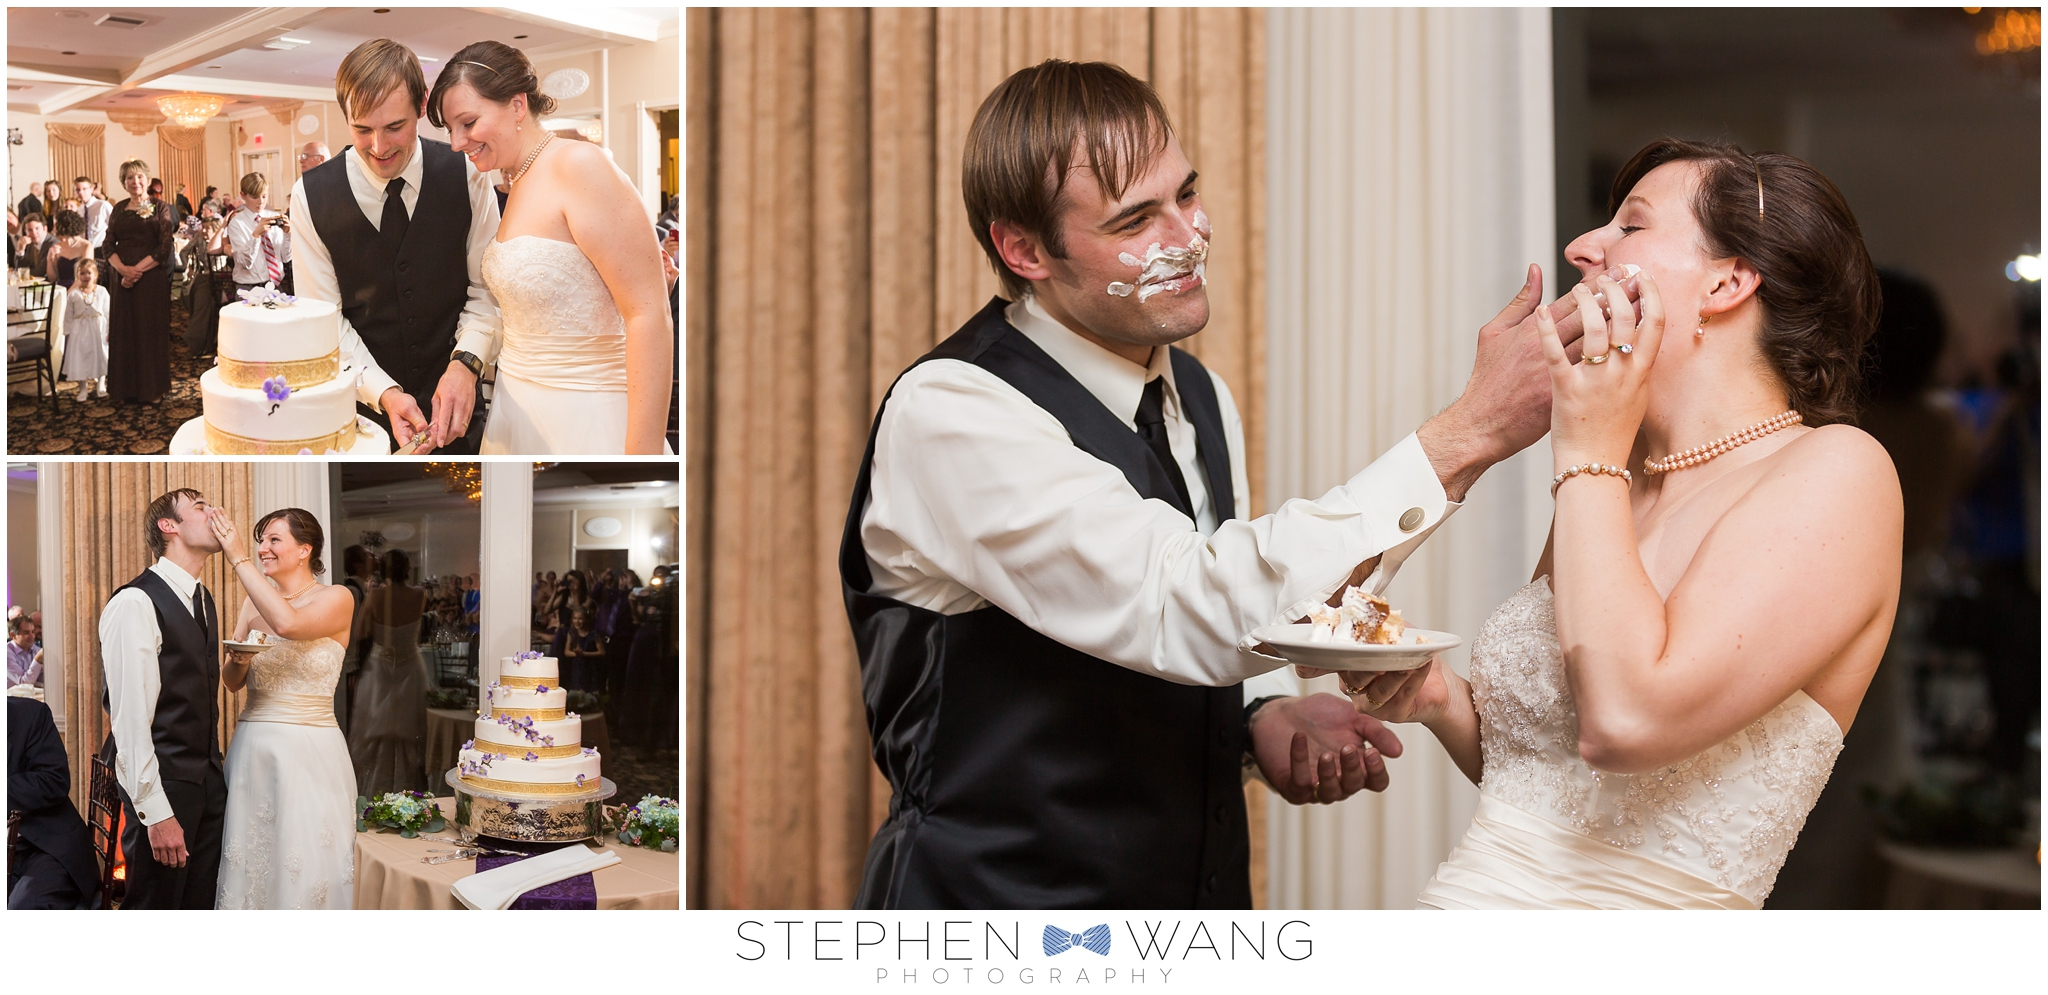 Stephen Wang Photography Wedding Connecticut CT Belle Terrace Avon Old Farms New England Wedding New Haven-11-17_0028.jpg